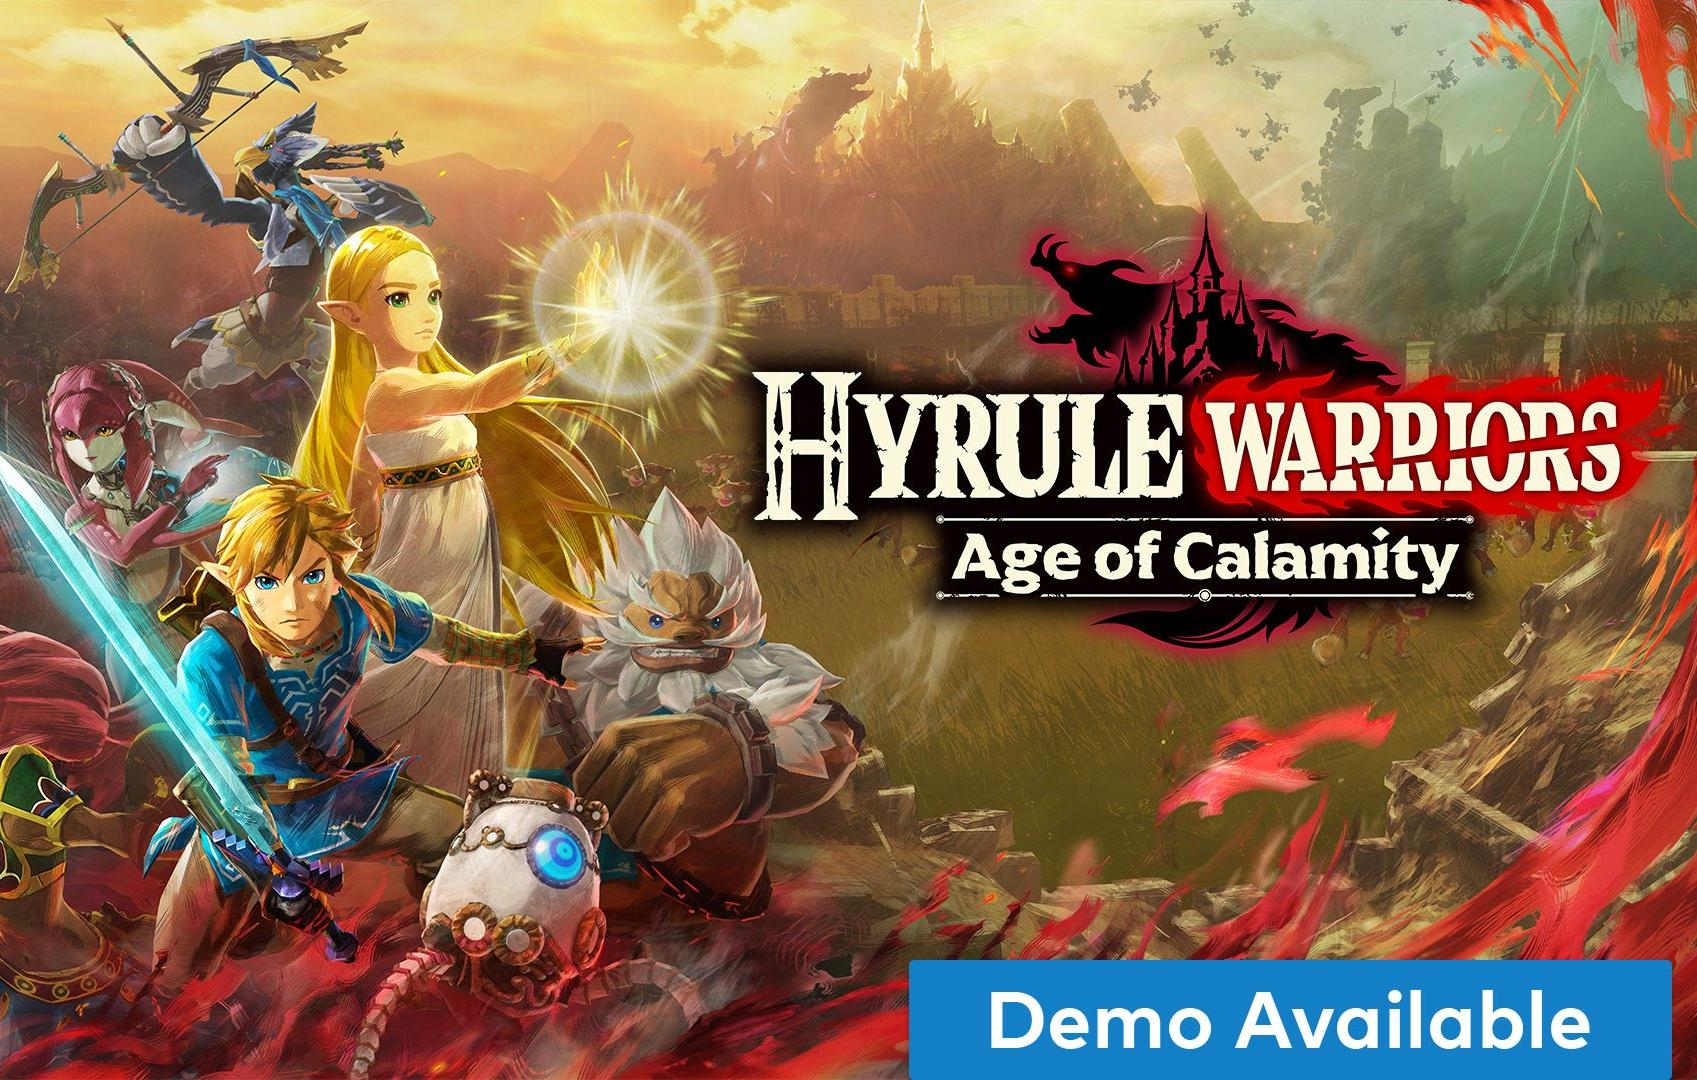 Switch Hyrule Warriors Age Of Calamity Demo Available Olhar Digital